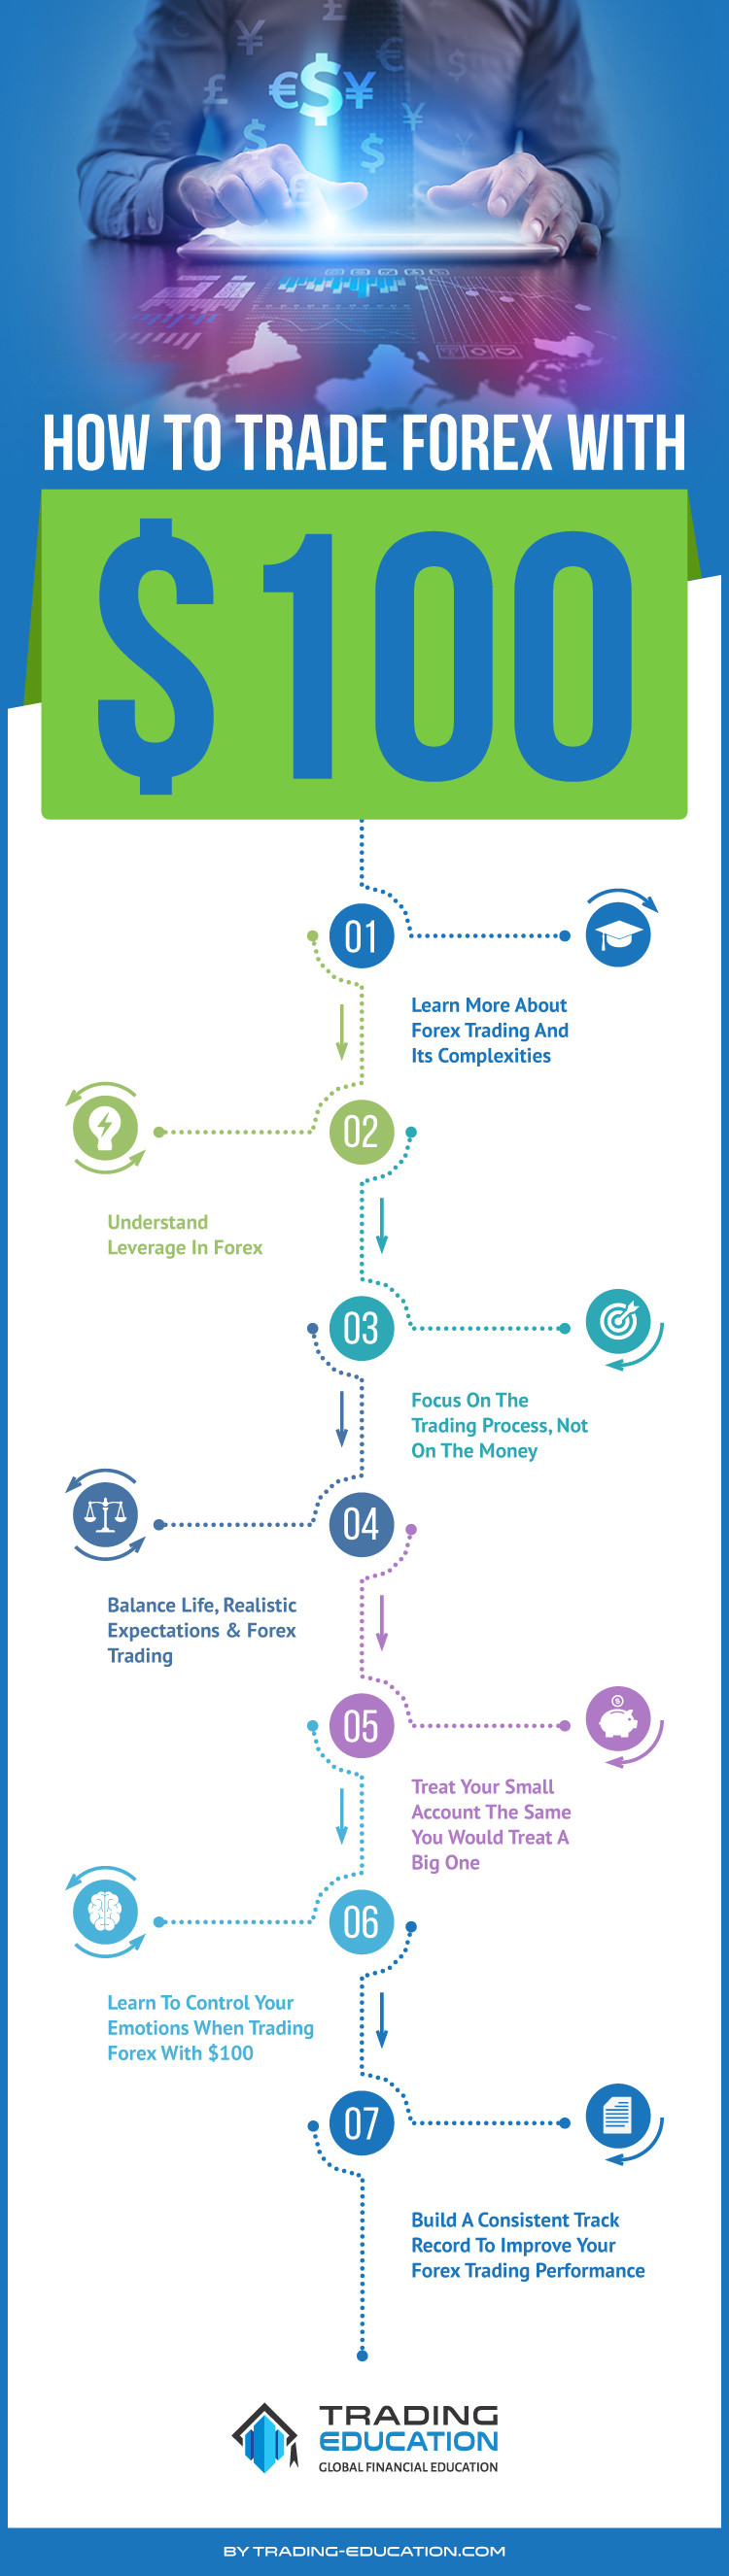 how to trade forex with $100 infographic